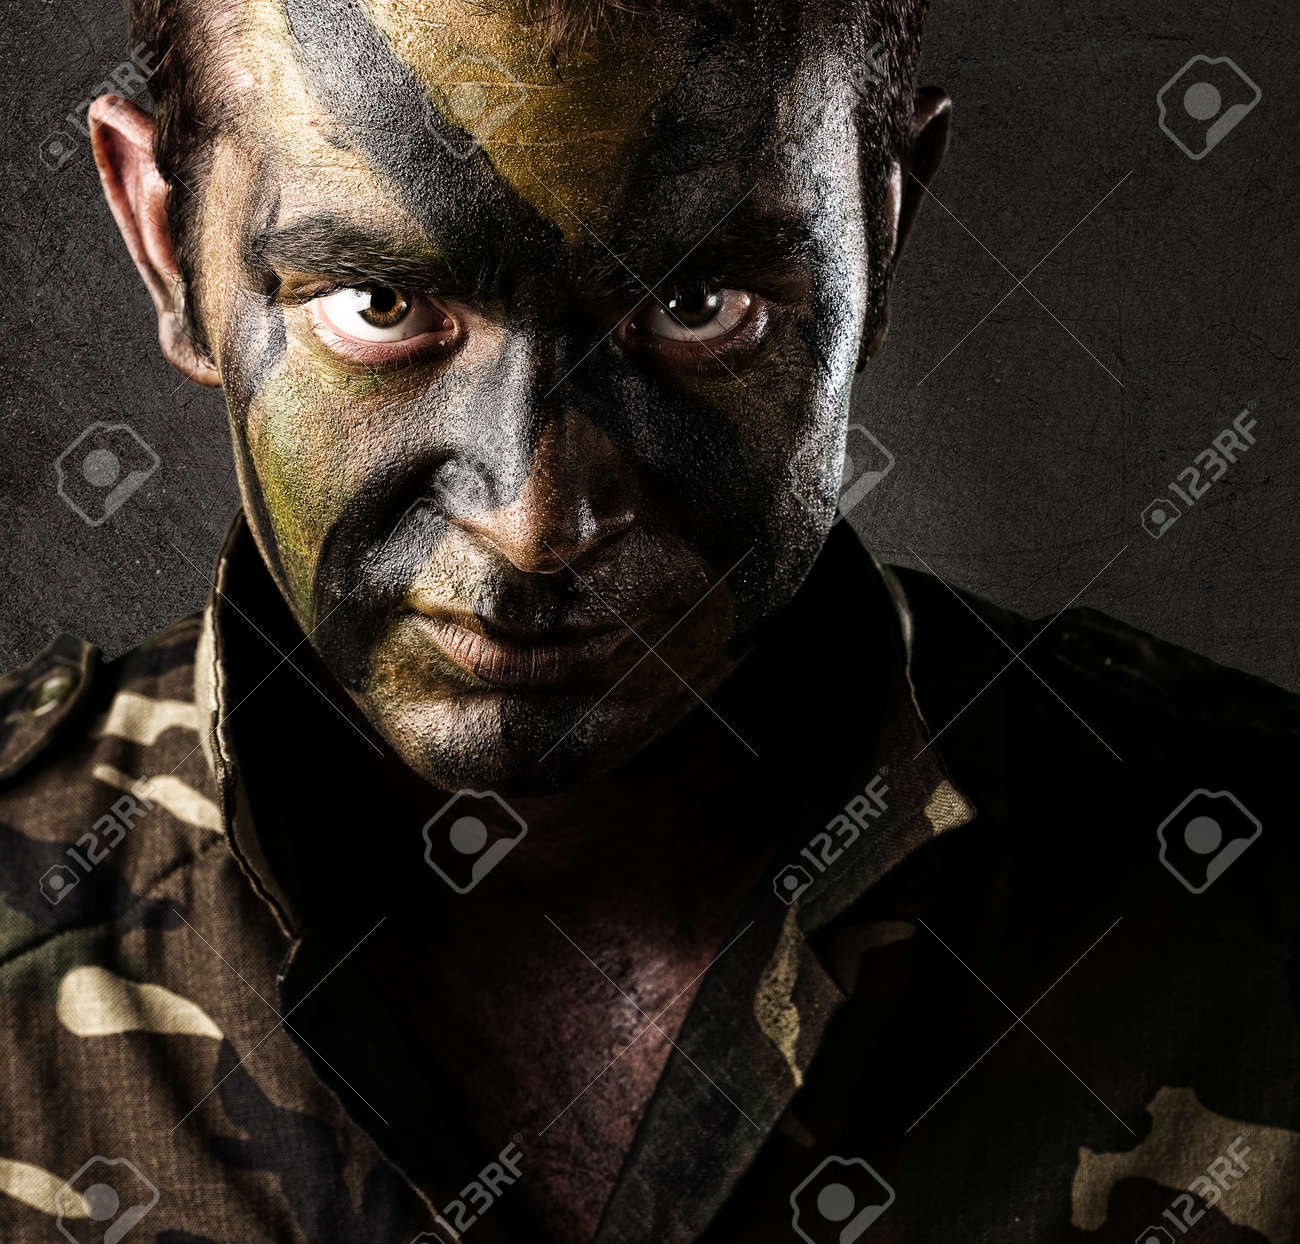 young soldier face looking straight ahead againsta a grunge wall Stock Photo - 11507700